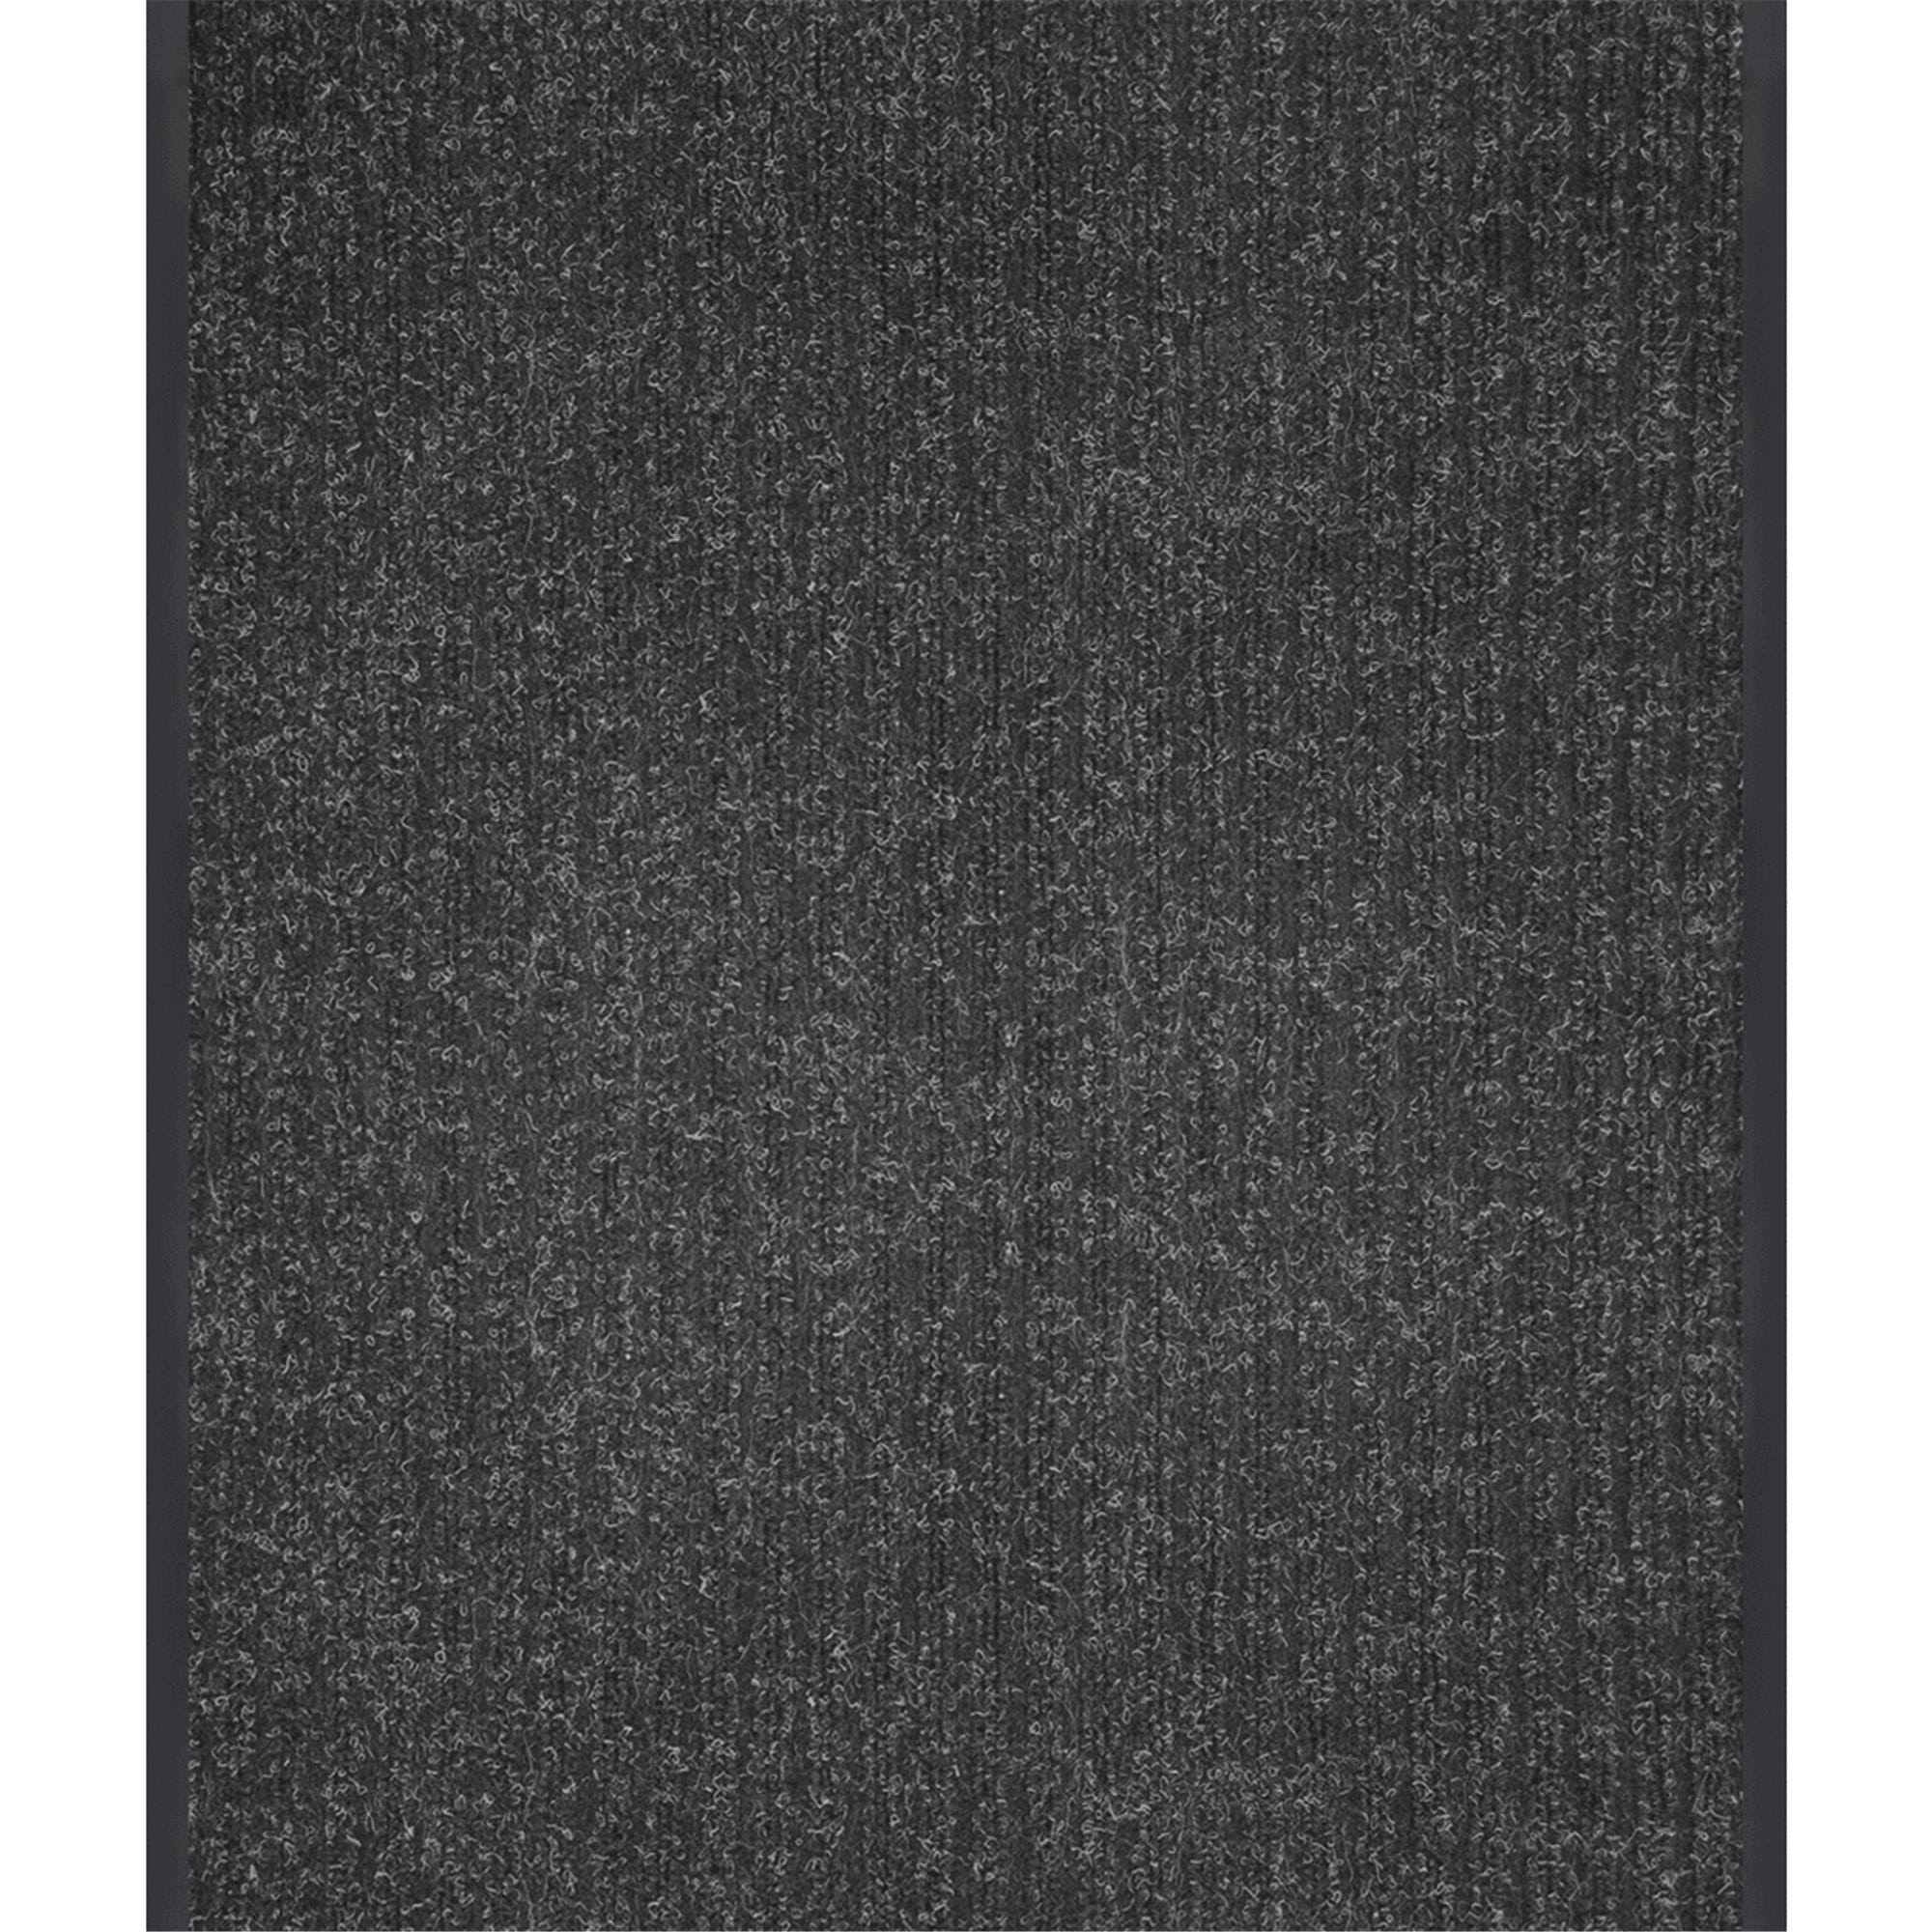 "WJ Dennis Carpet Runner - 60' x 36"", Dark Gray"